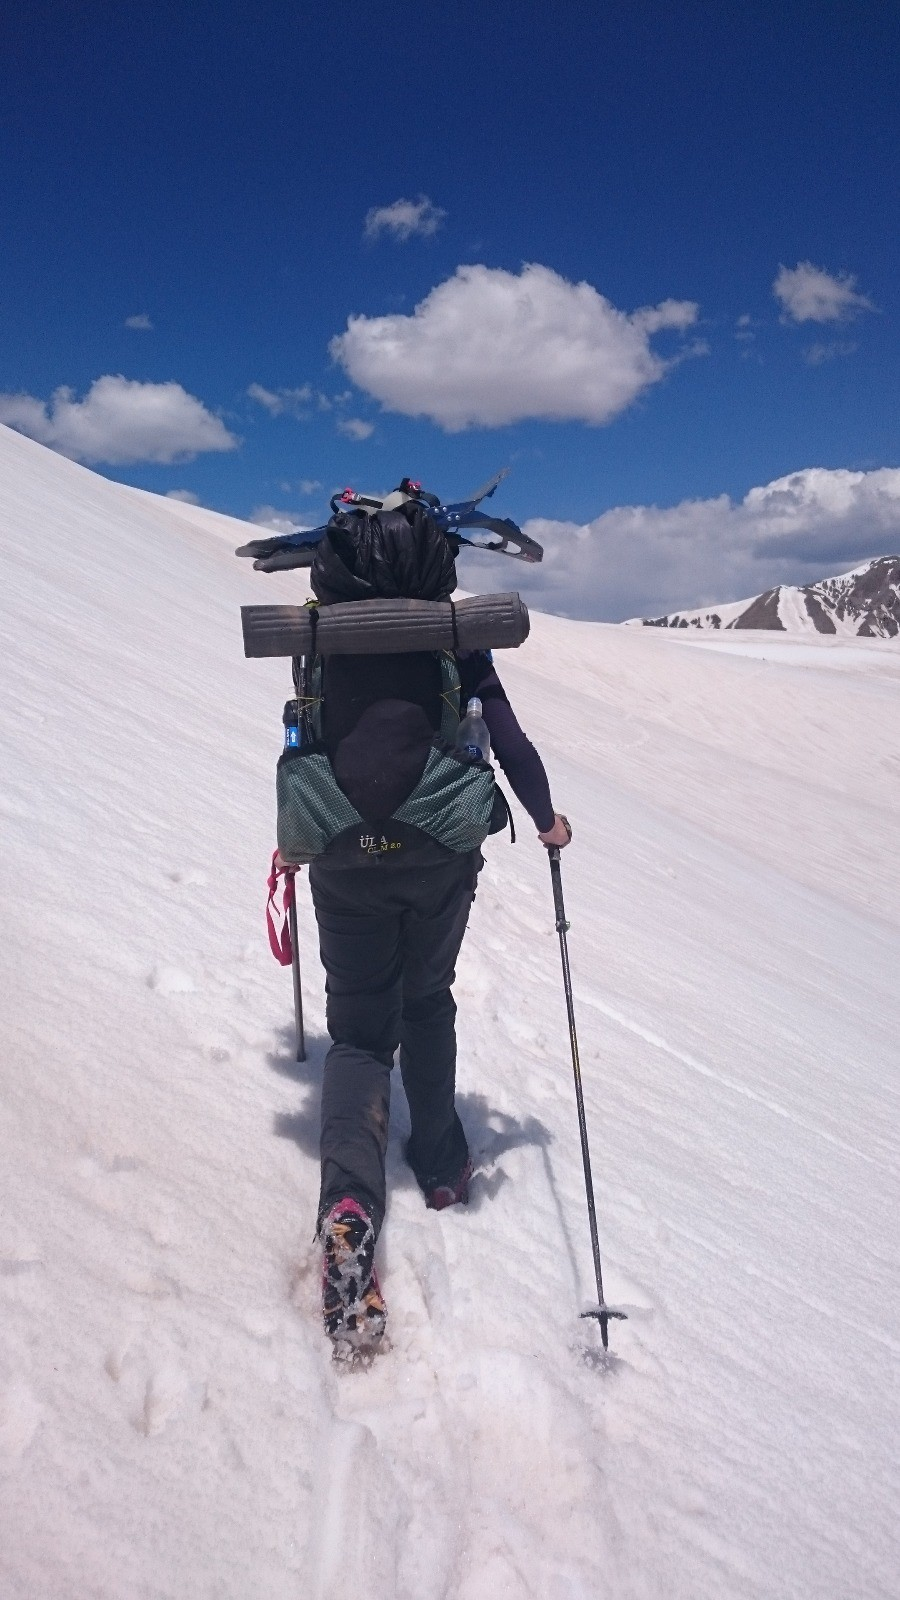 Walking in snow with poles